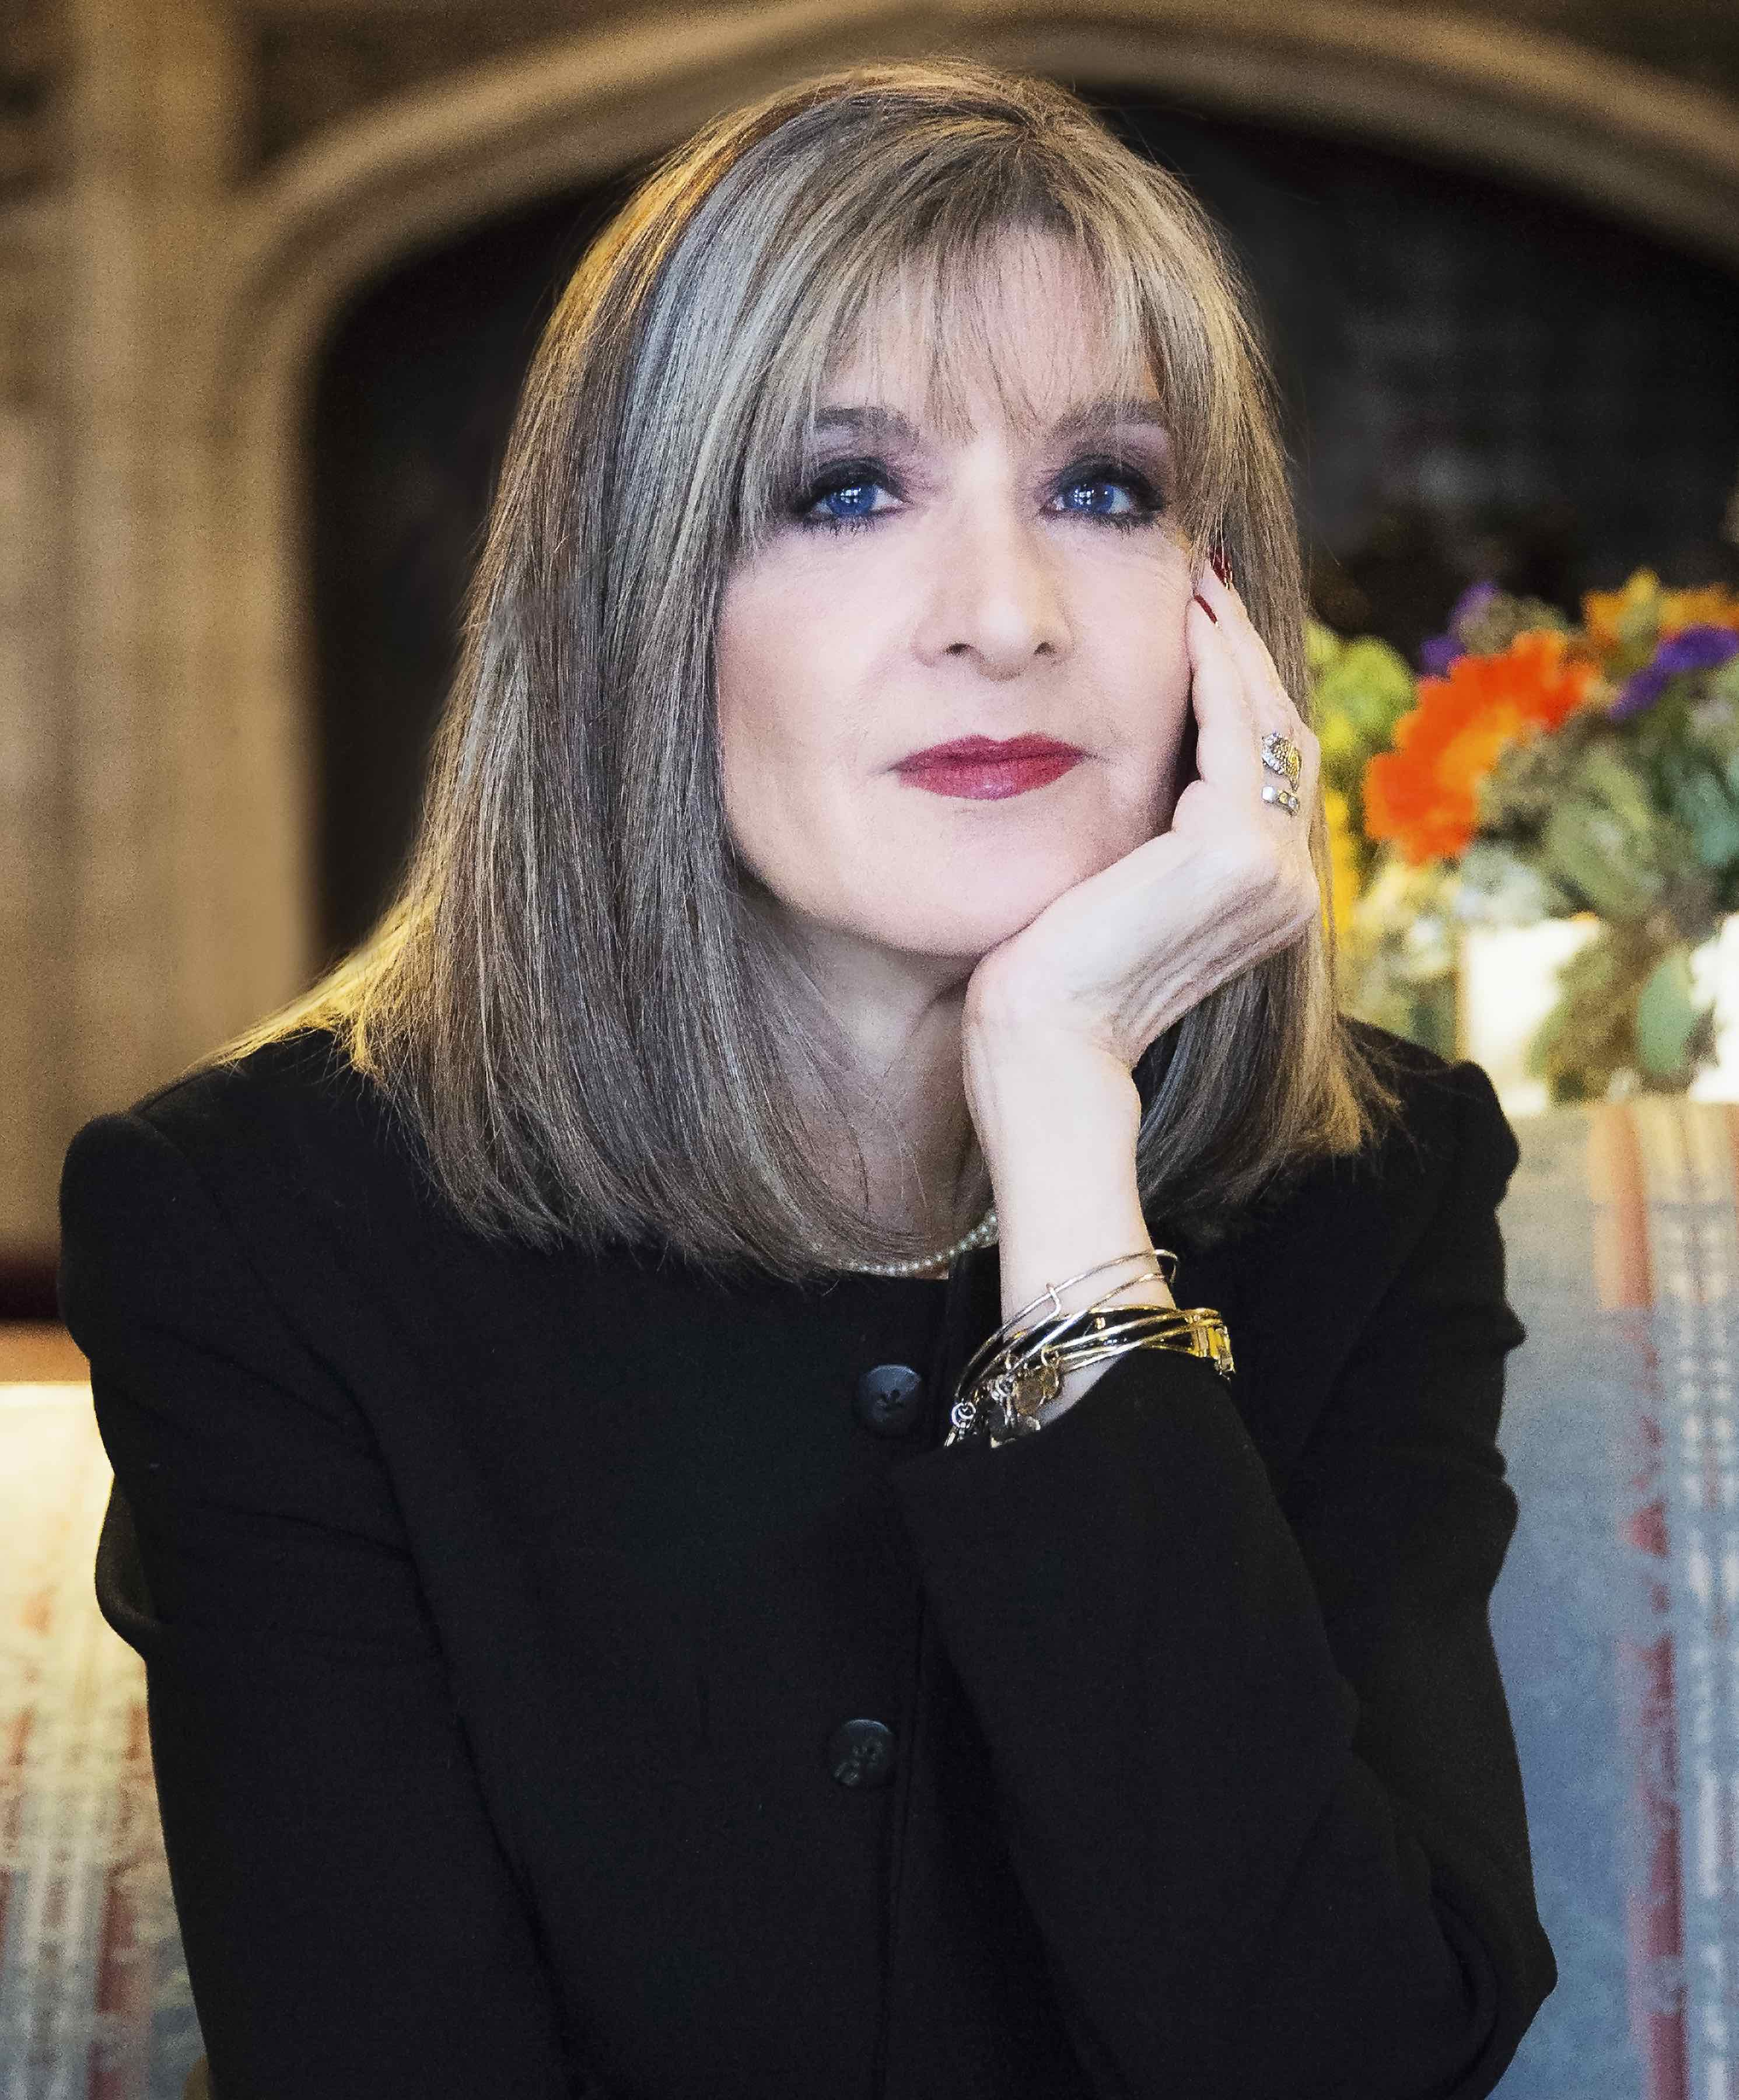 Hank Phillippi Ryan interview: In search of the story